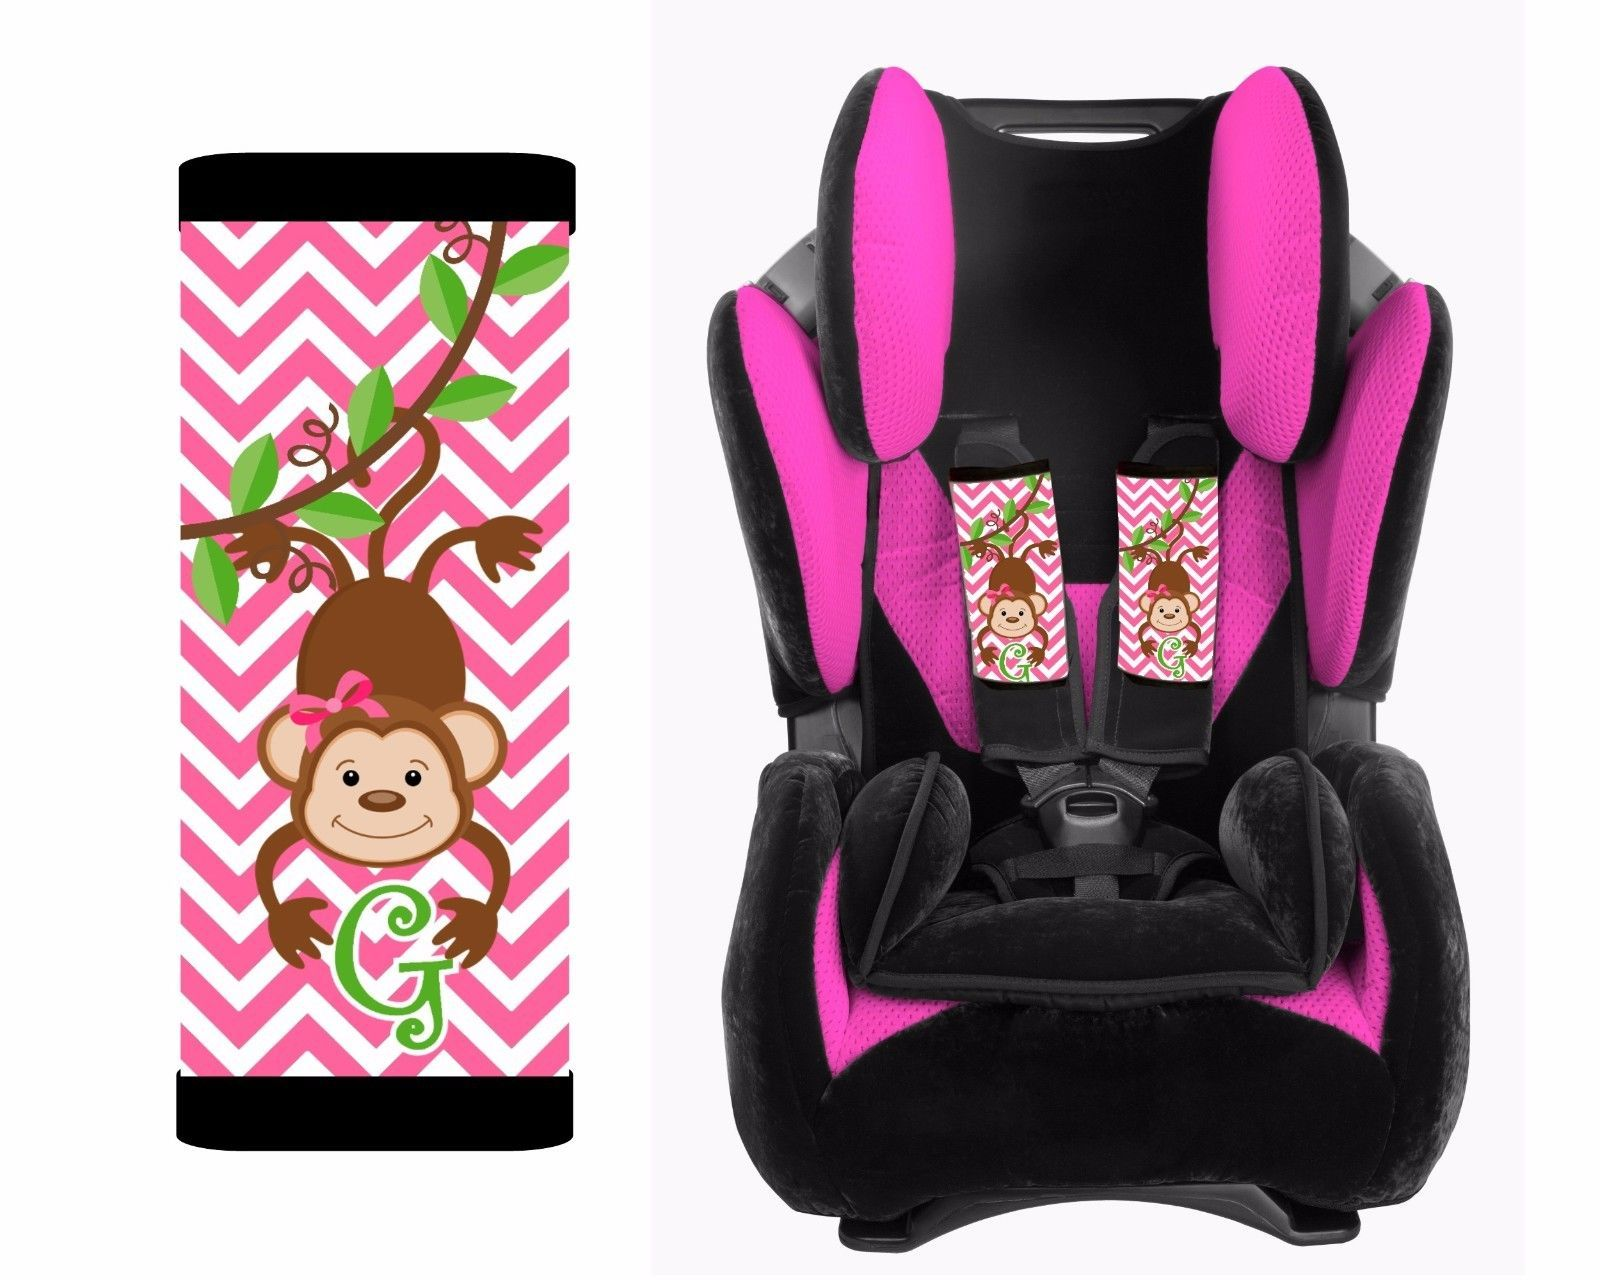 personalized baby toddler car seat strap covers monkey pink chevron car seat accessories. Black Bedroom Furniture Sets. Home Design Ideas